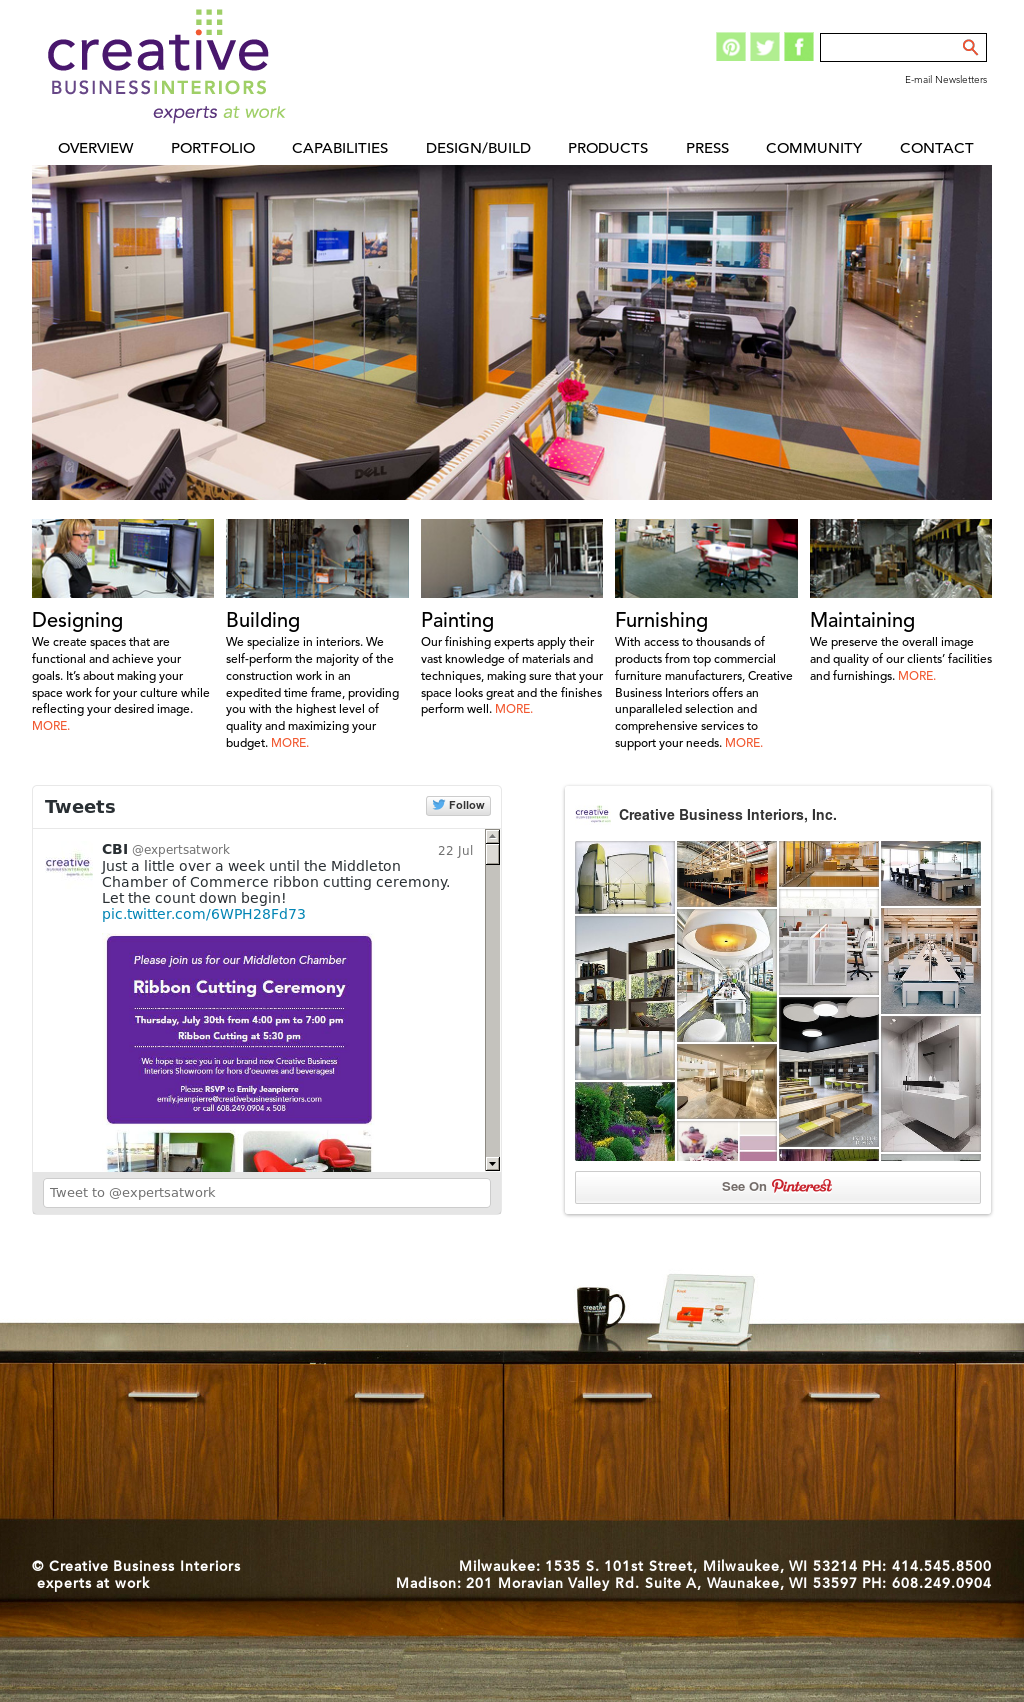 Creative Business Interiors Website History